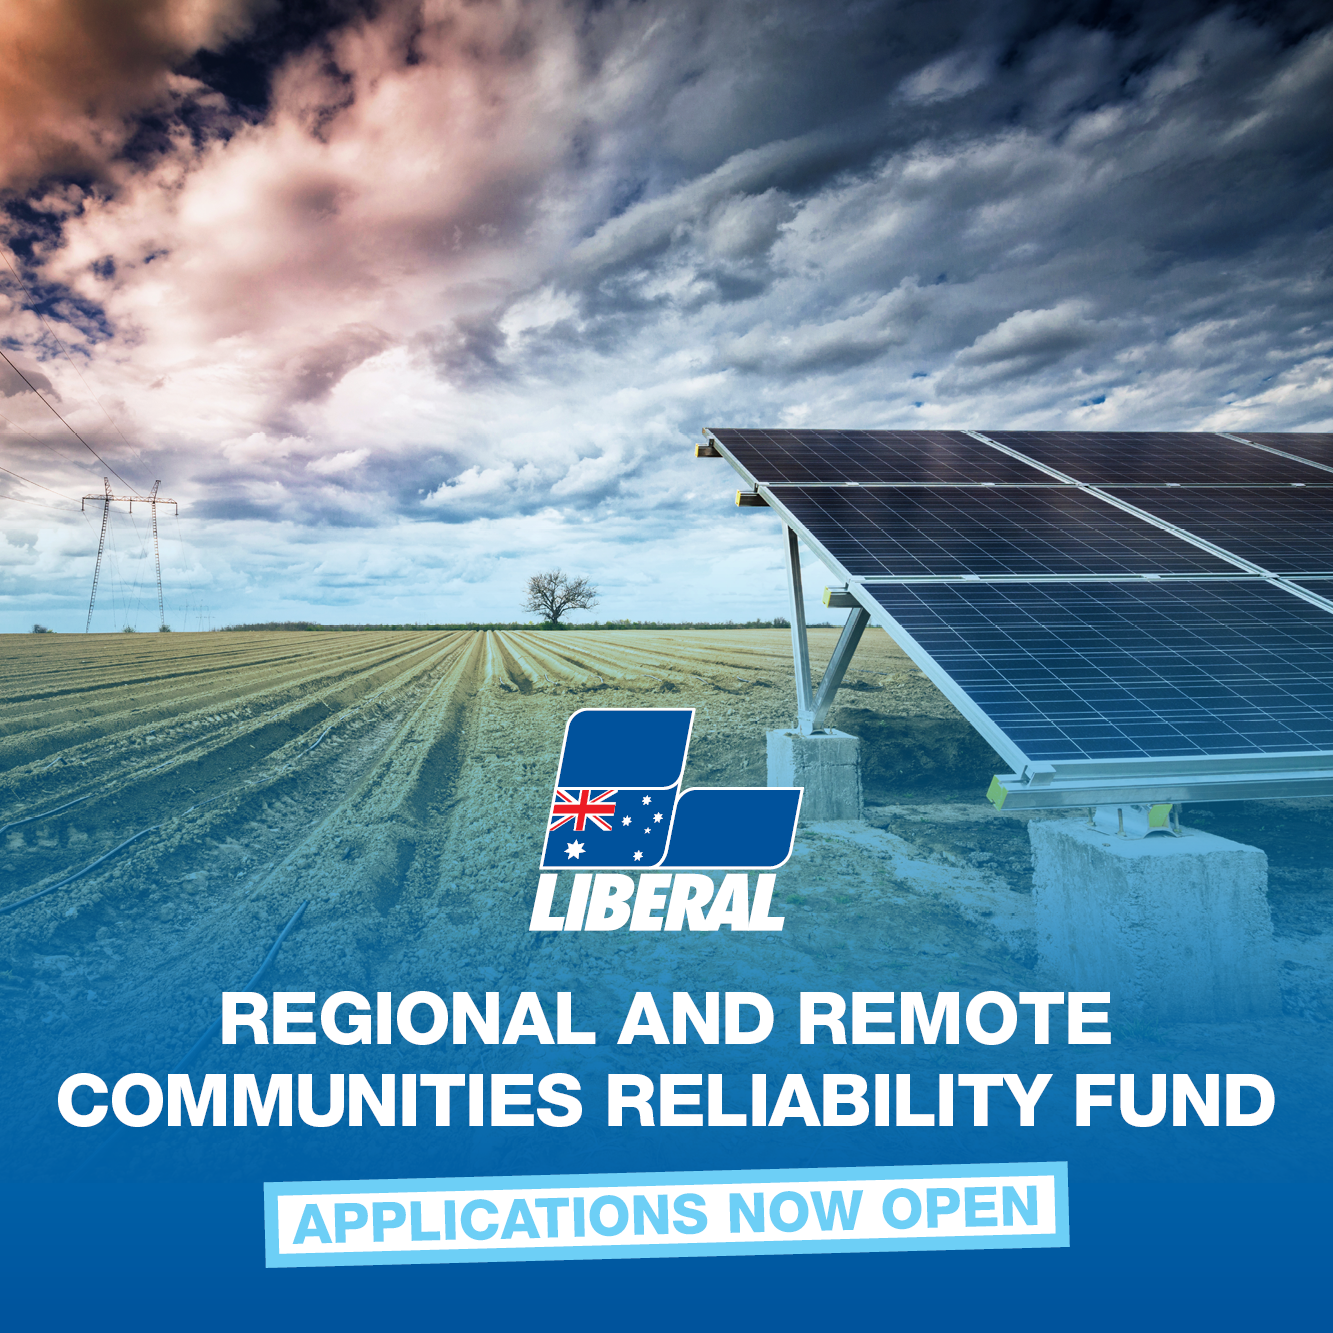 20191009_Regional-and-Remote-Communities-Reliability-Fund-LPA.png